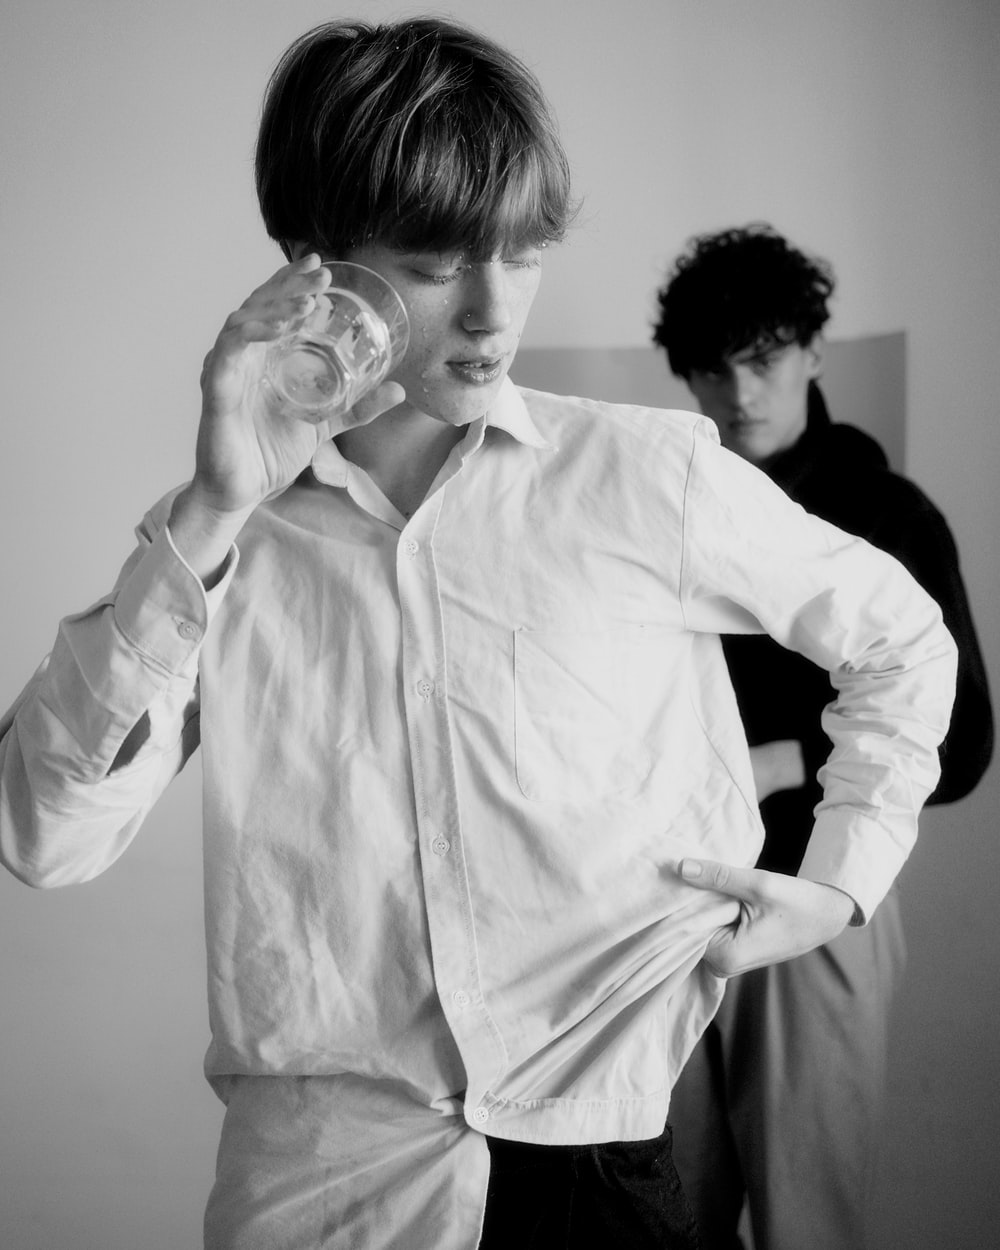 man holding clear drinking glass